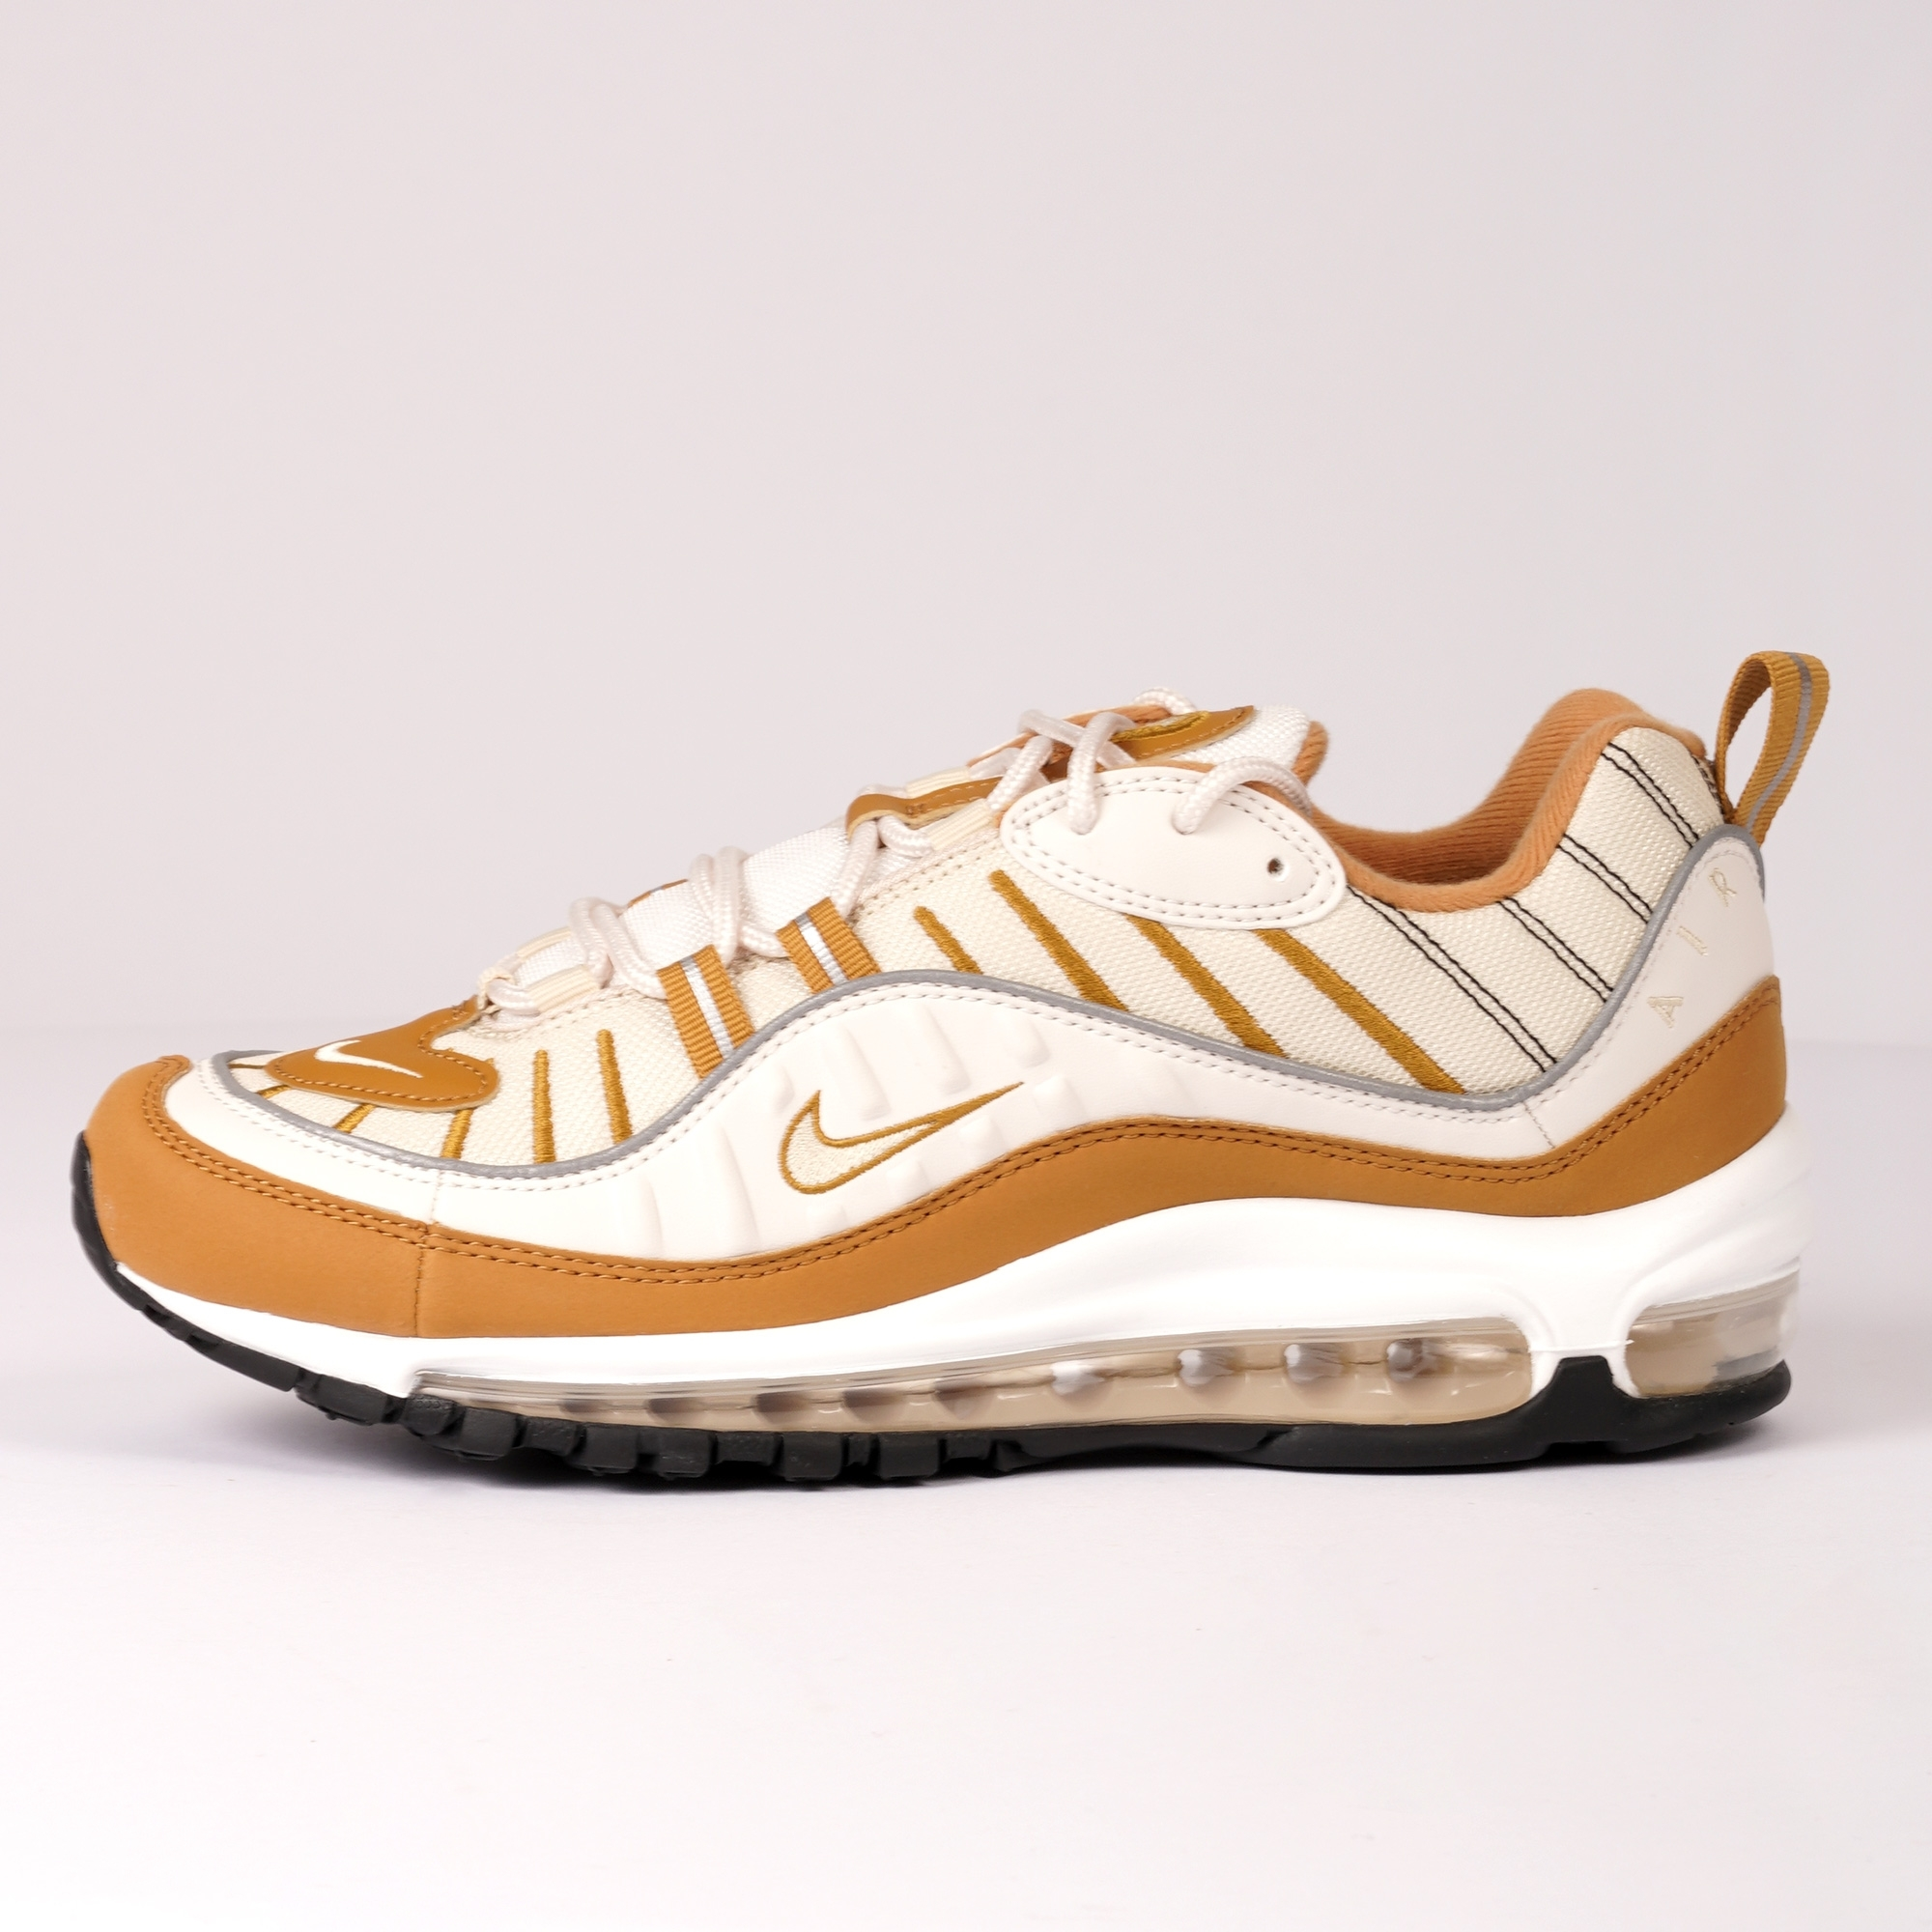 new style c744f c4892 Air Max 98 - Phantom, Beach amp Wheat